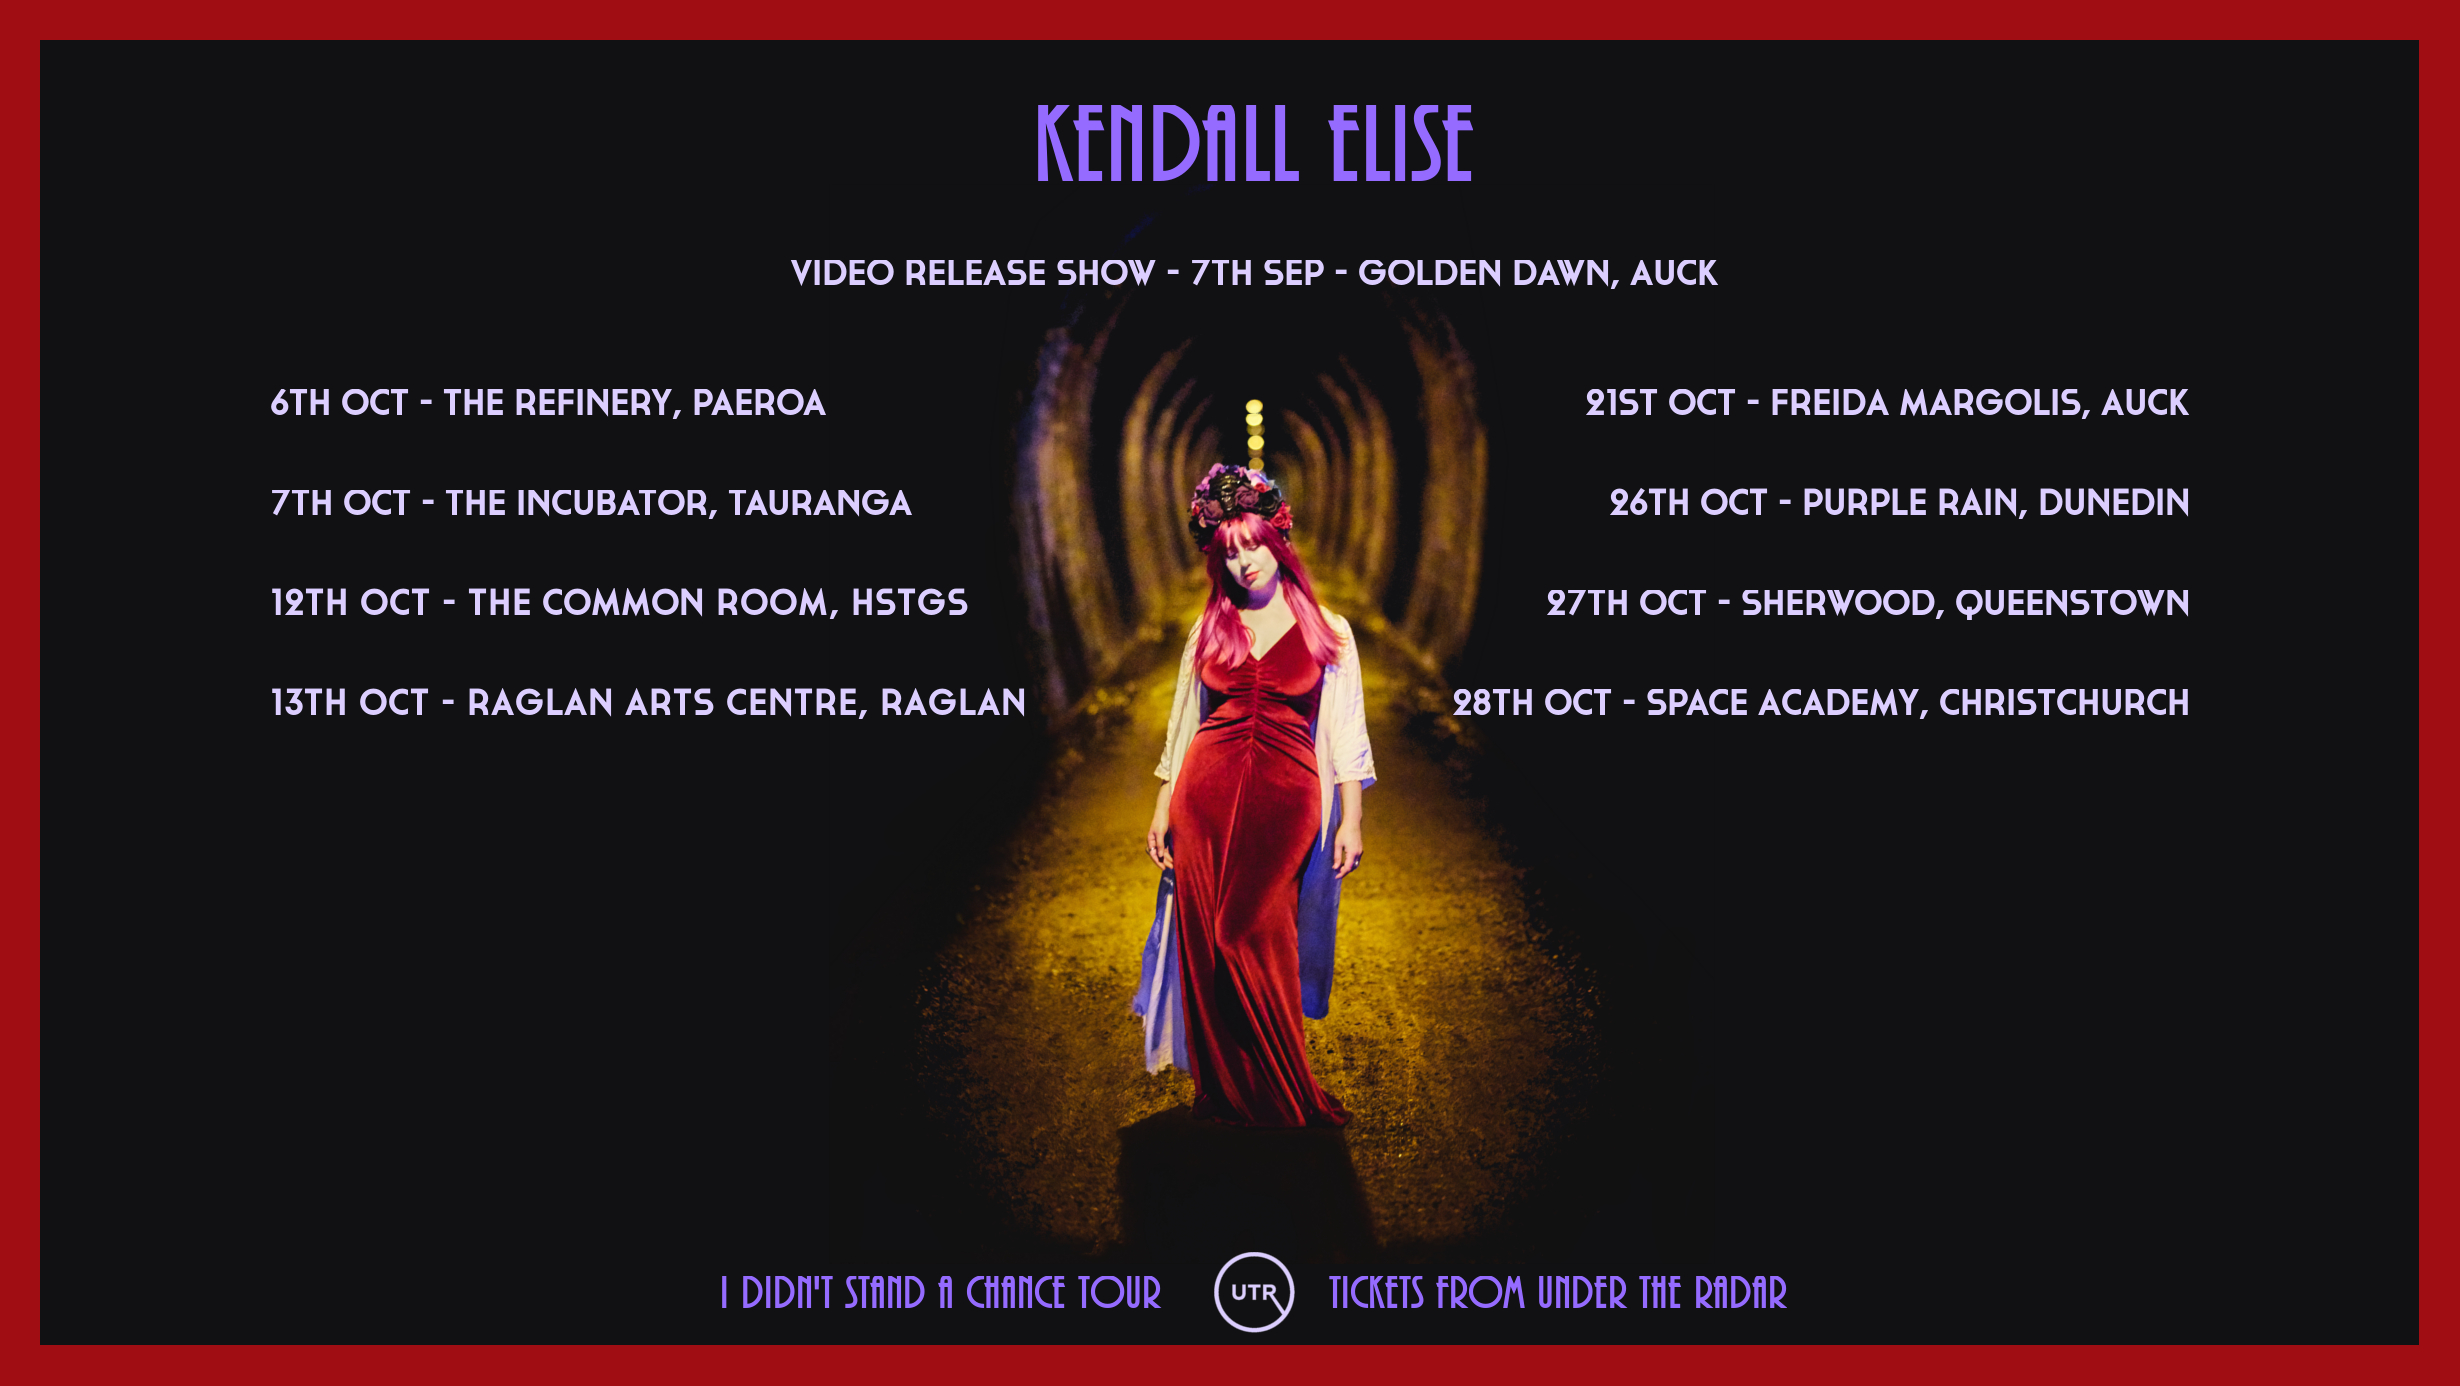 Kendall Elise - I Didn't Stand A Chance Tour